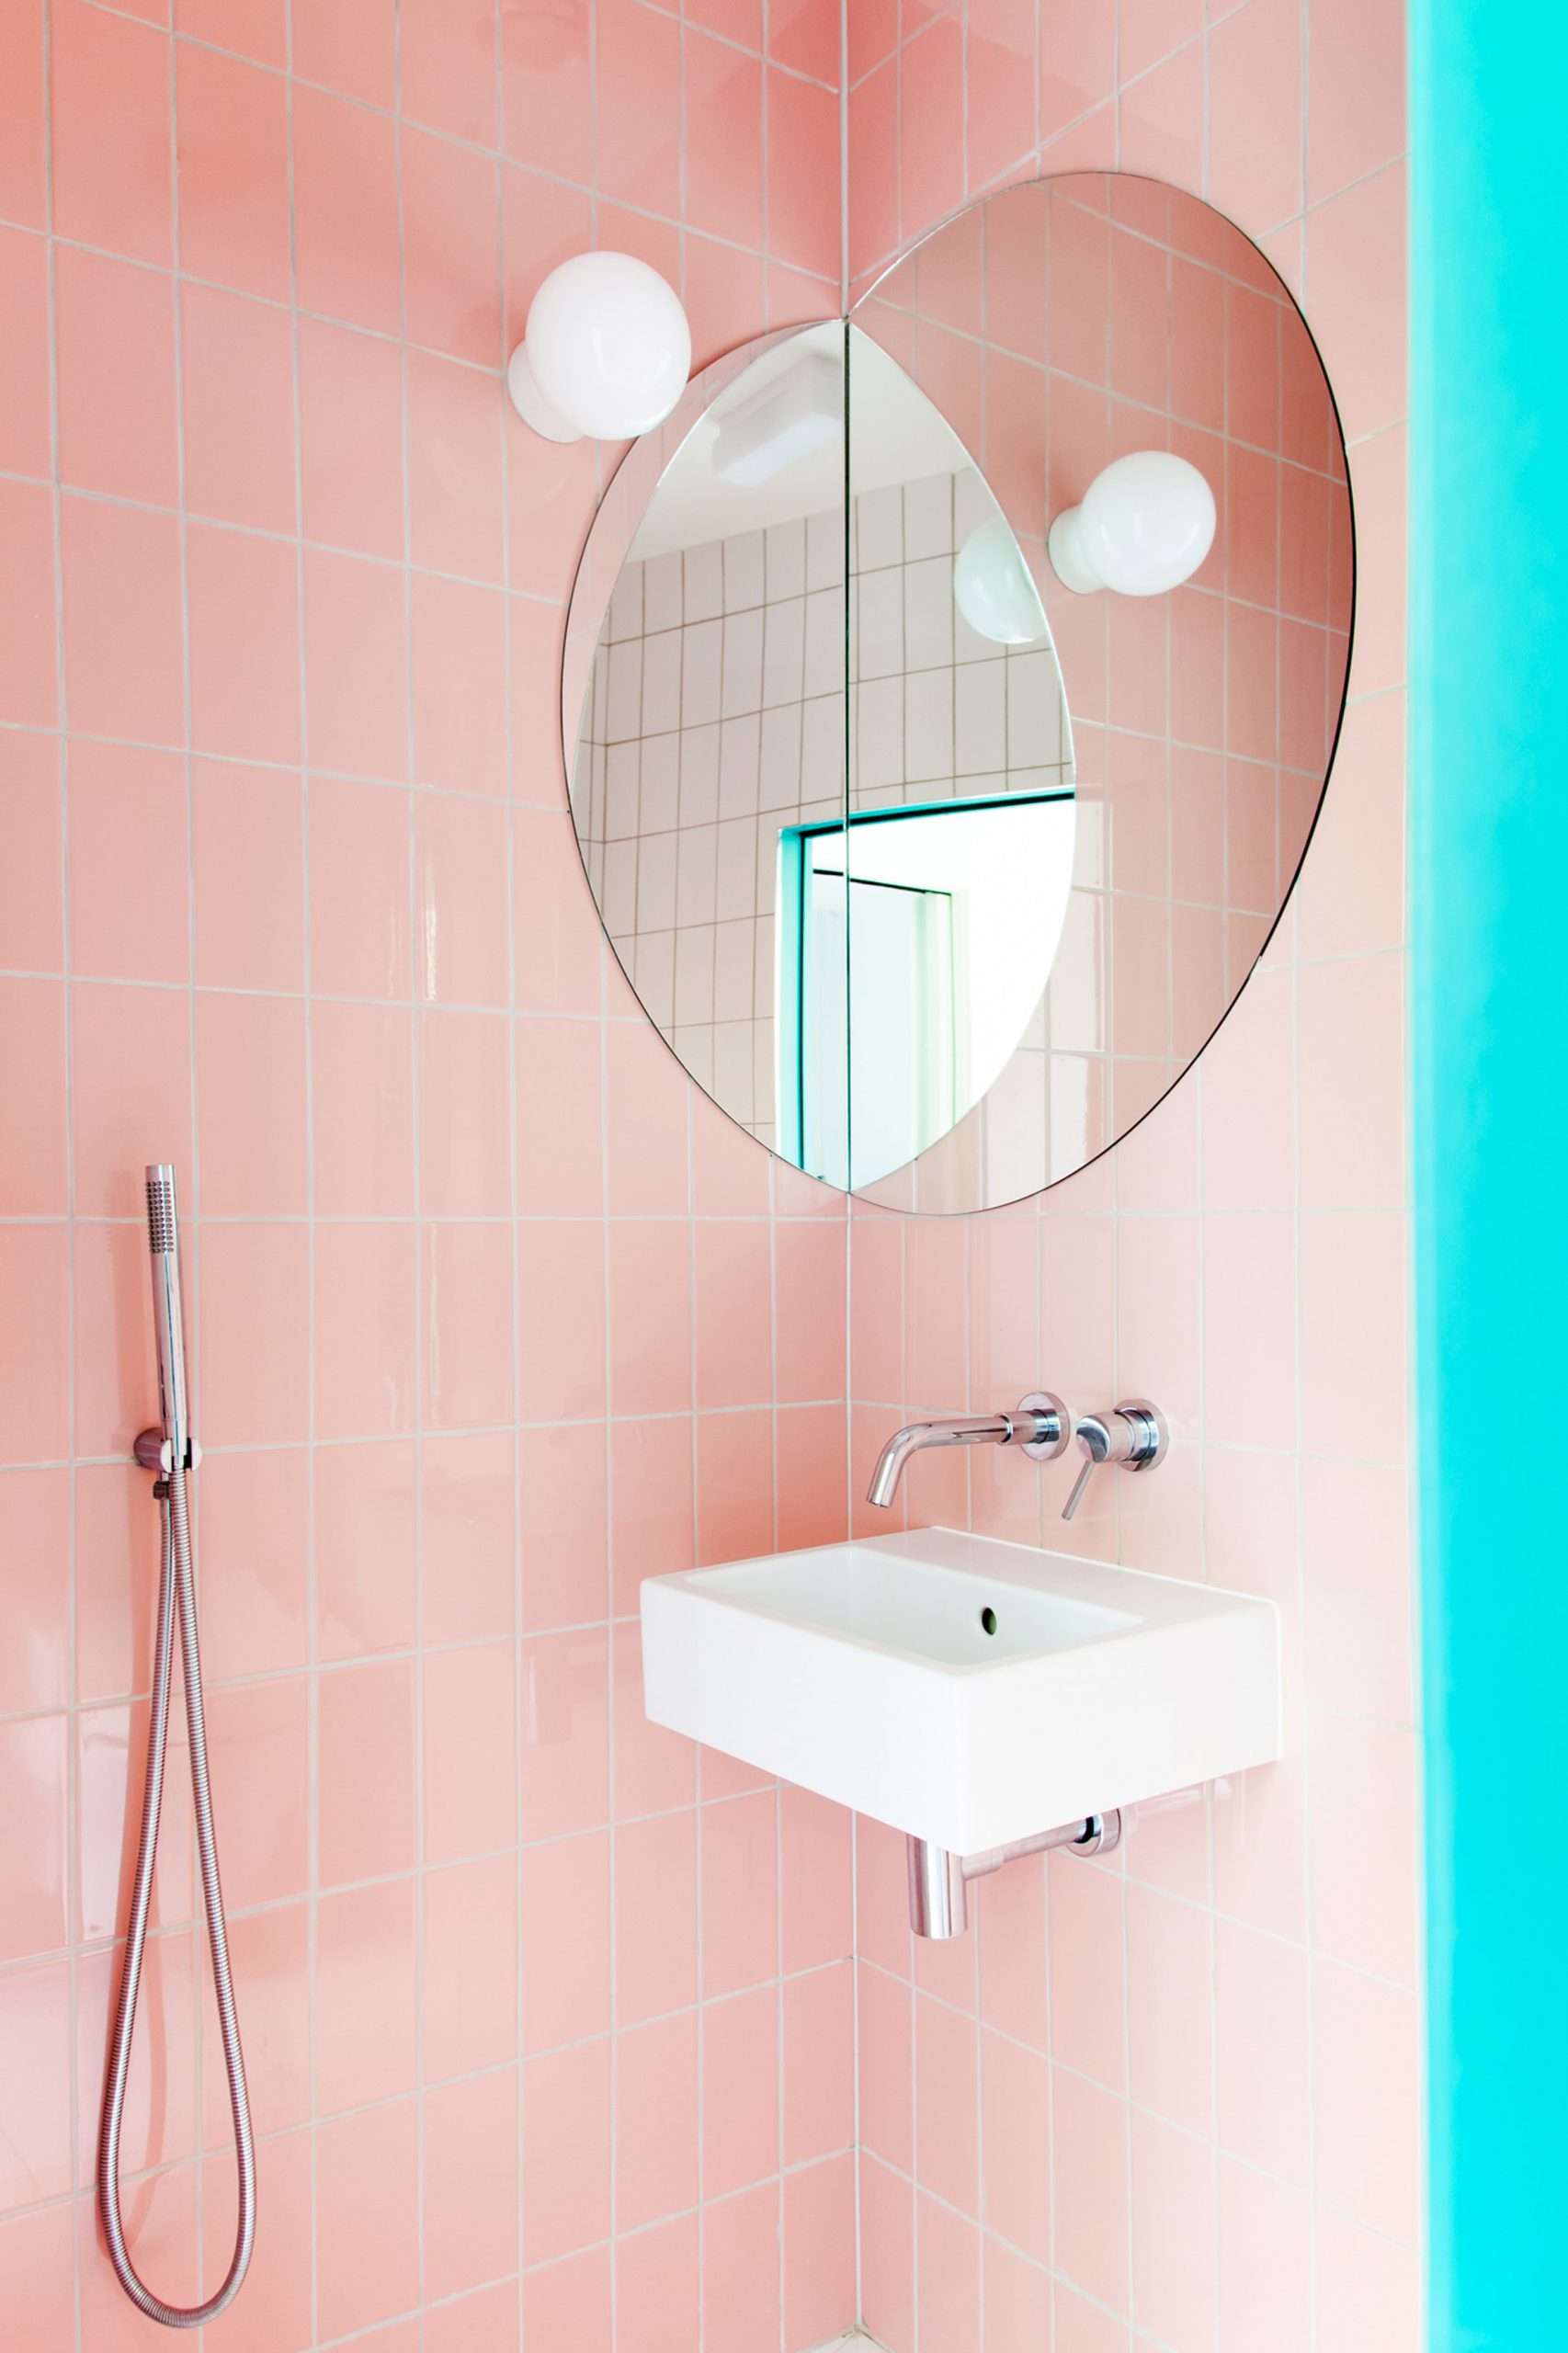 A bathroom with pink wall tiles